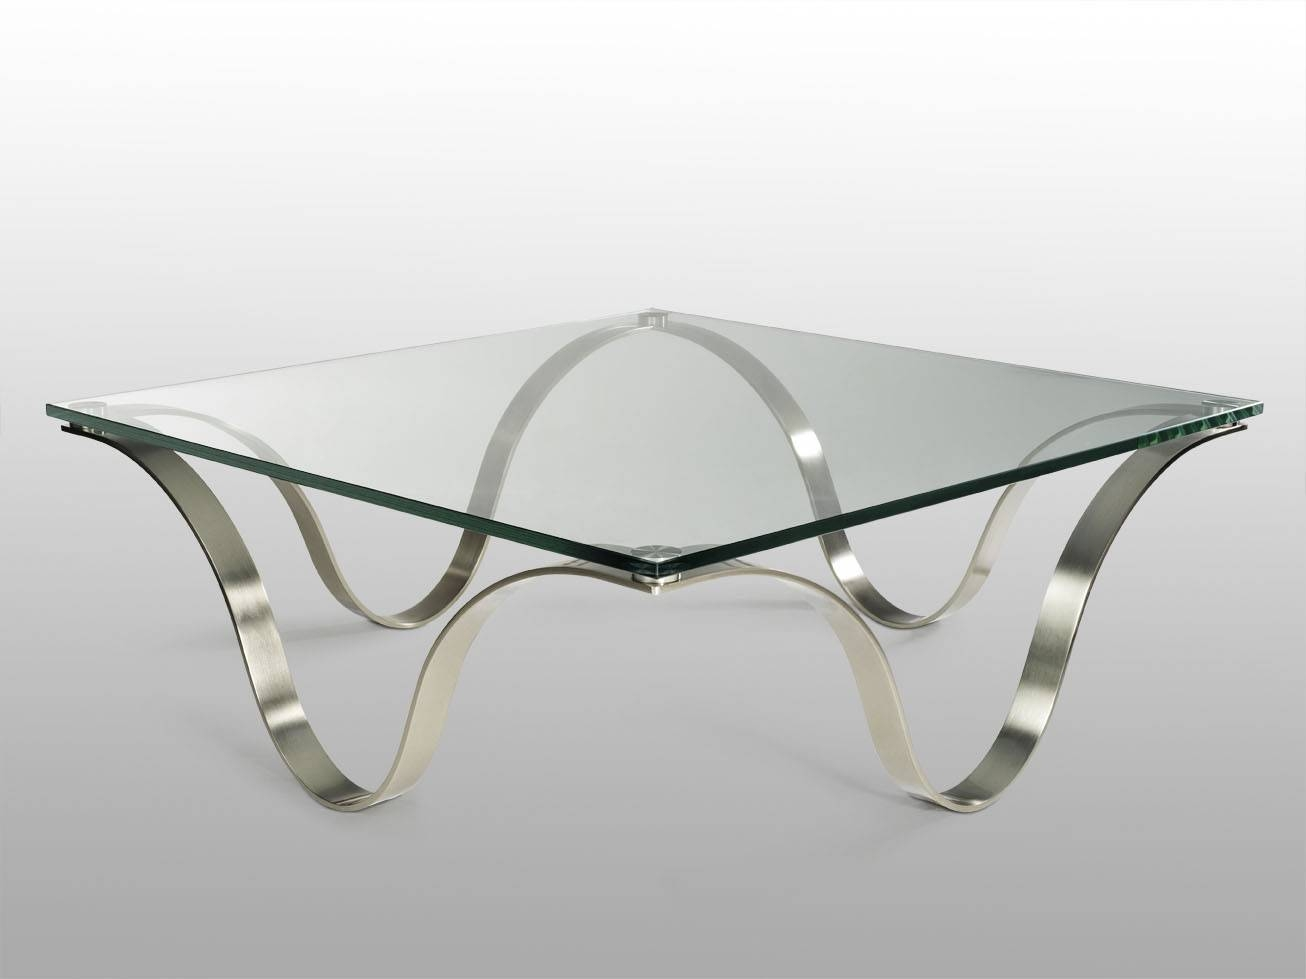 Metal And Glass Coffee Table | Babytimeexpo Furniture in Glass and Metal Coffee Tables (Image 21 of 30)